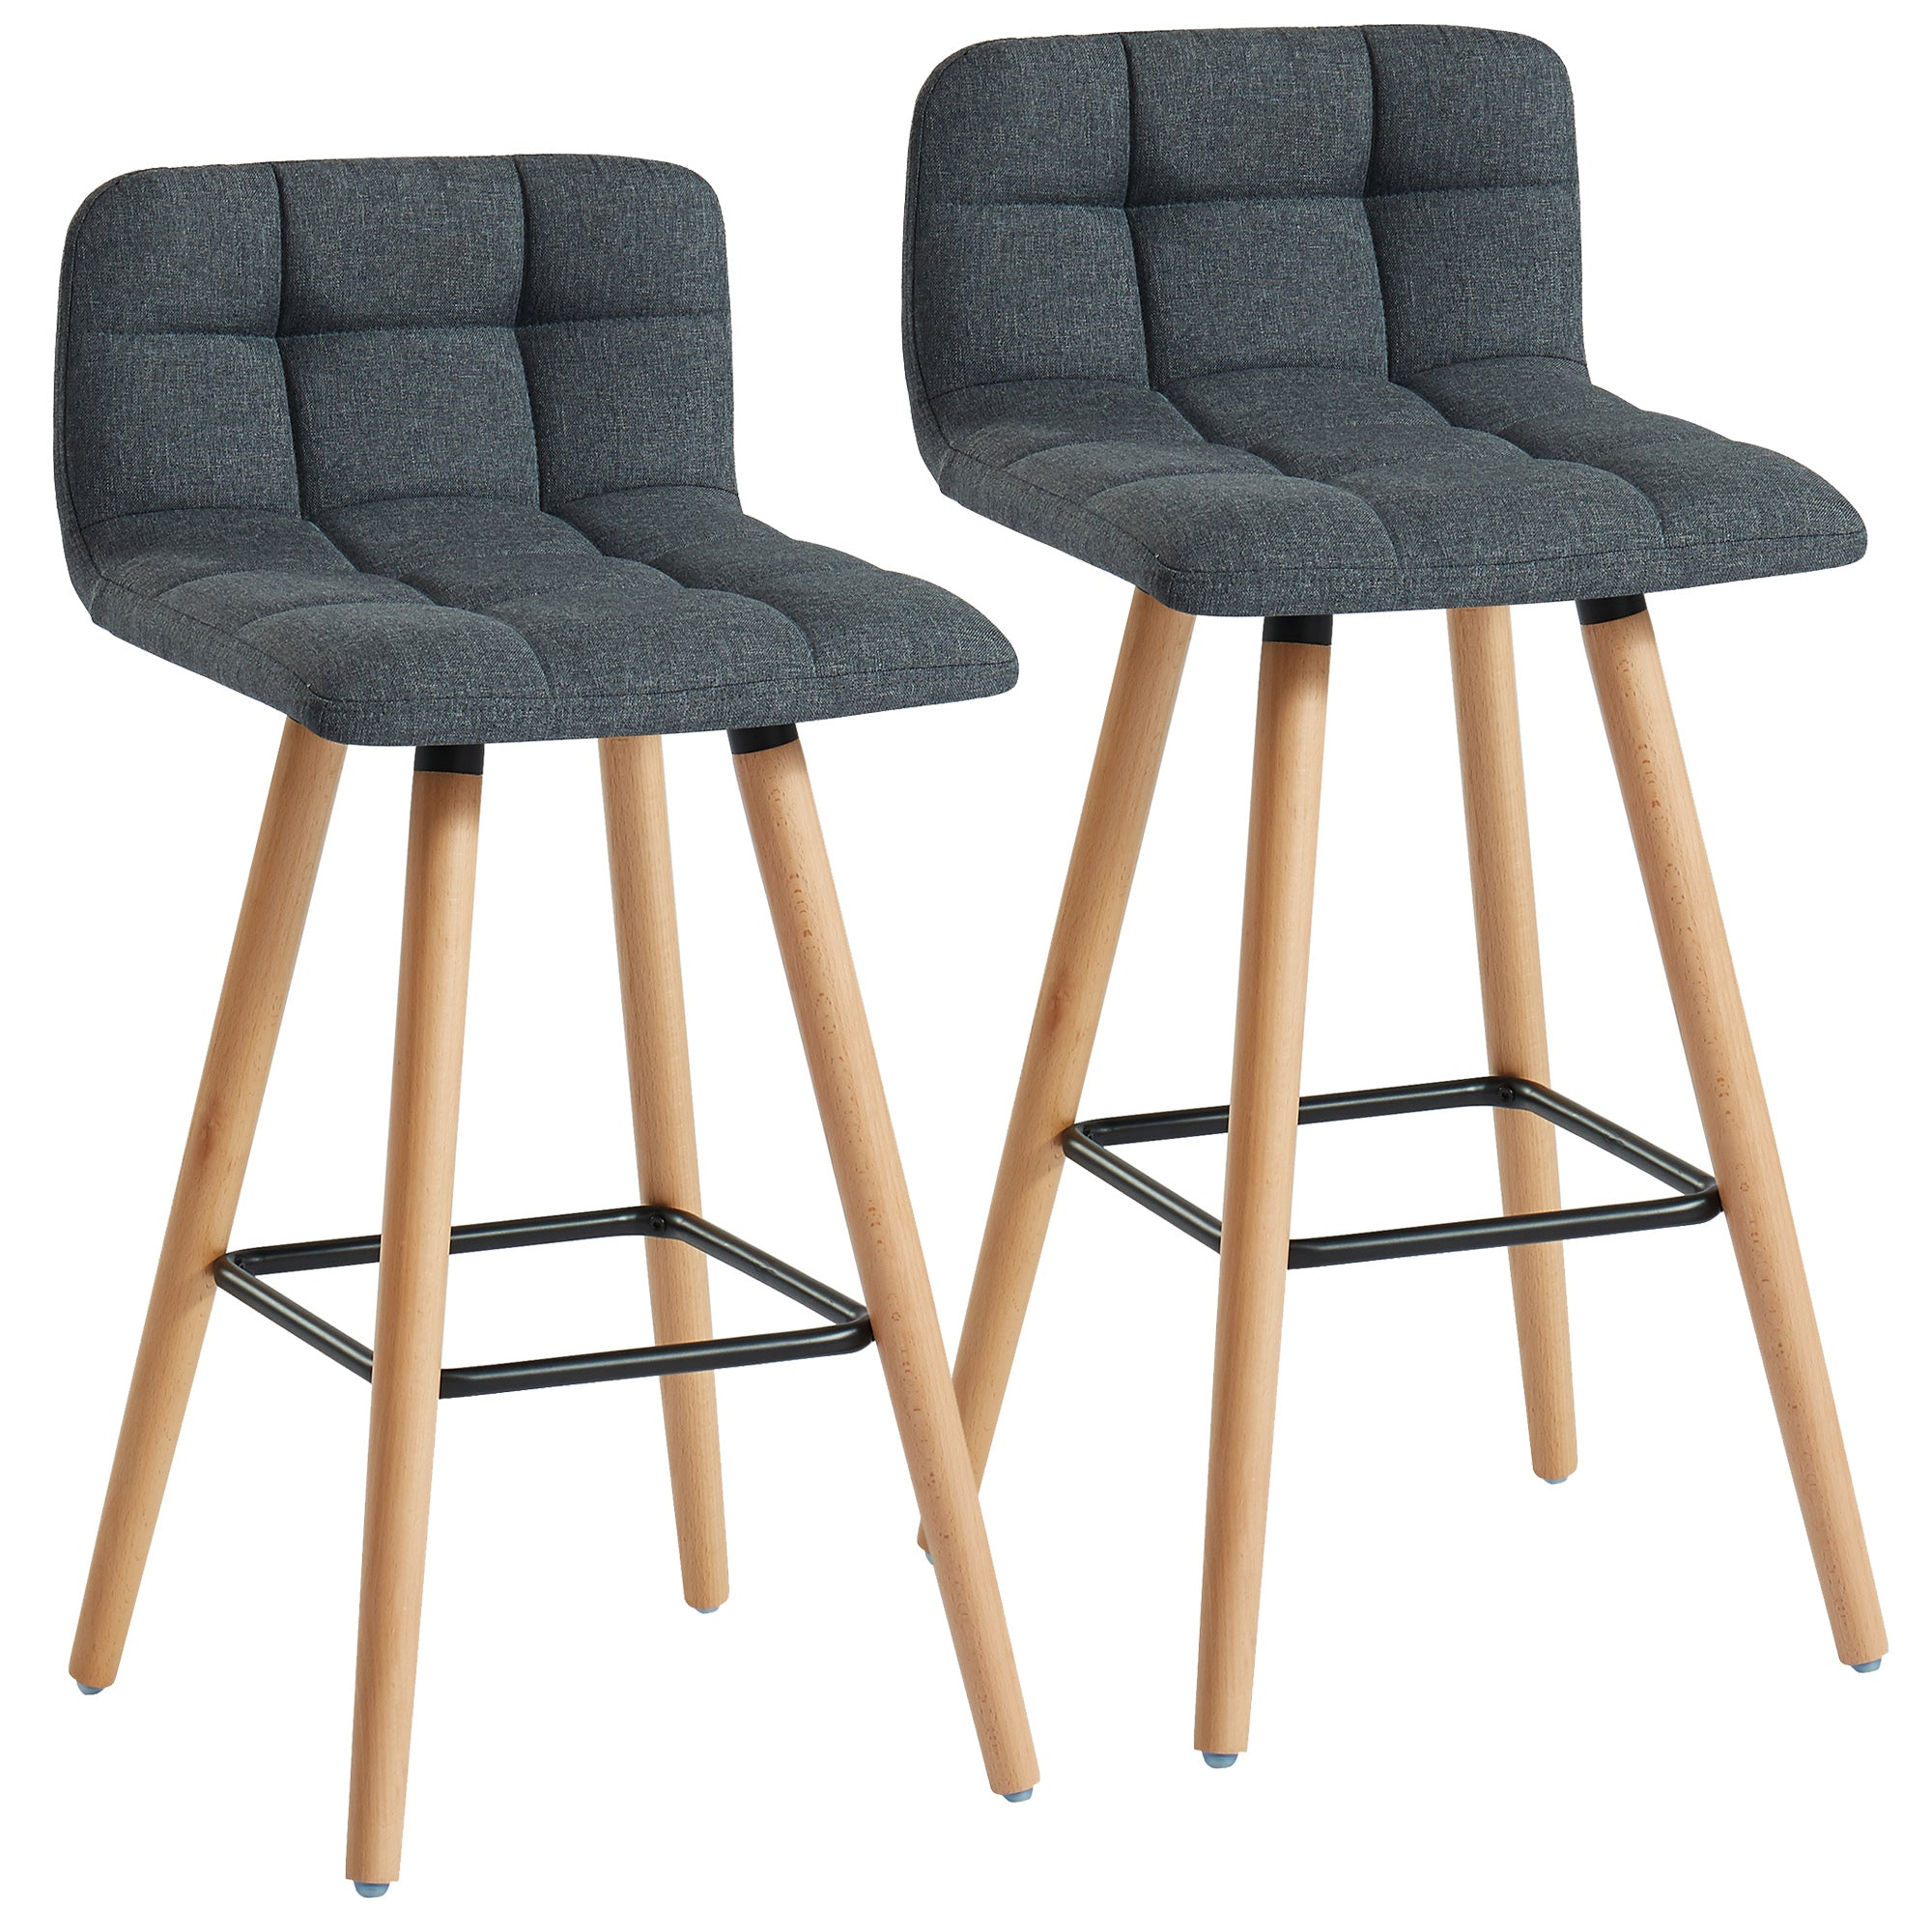 Rico 26'' Counter Stool, set of 2 in Charcoal